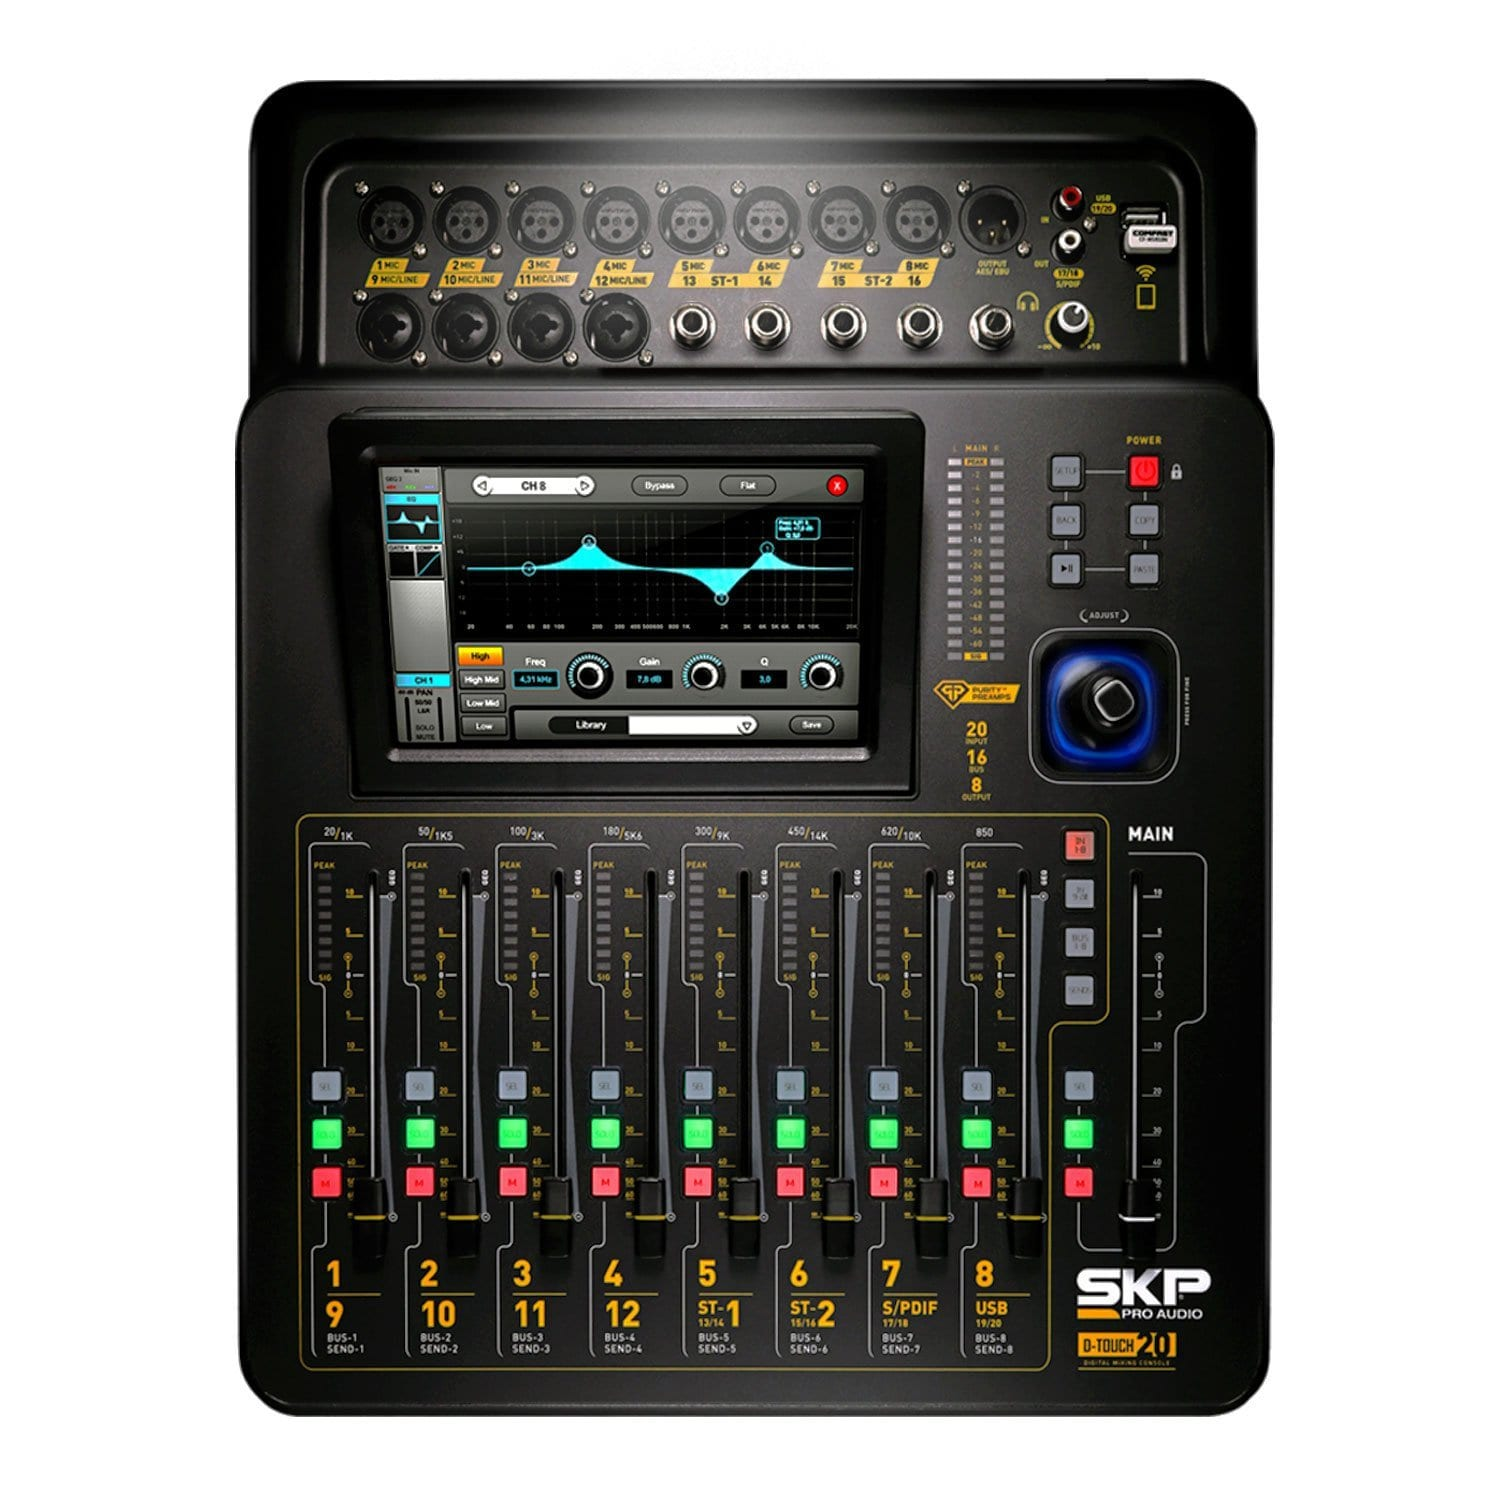 skp pro audio d touch 20 digital mixing console touchscreen wifi 20 inputs 16 bus 8 outs. Black Bedroom Furniture Sets. Home Design Ideas